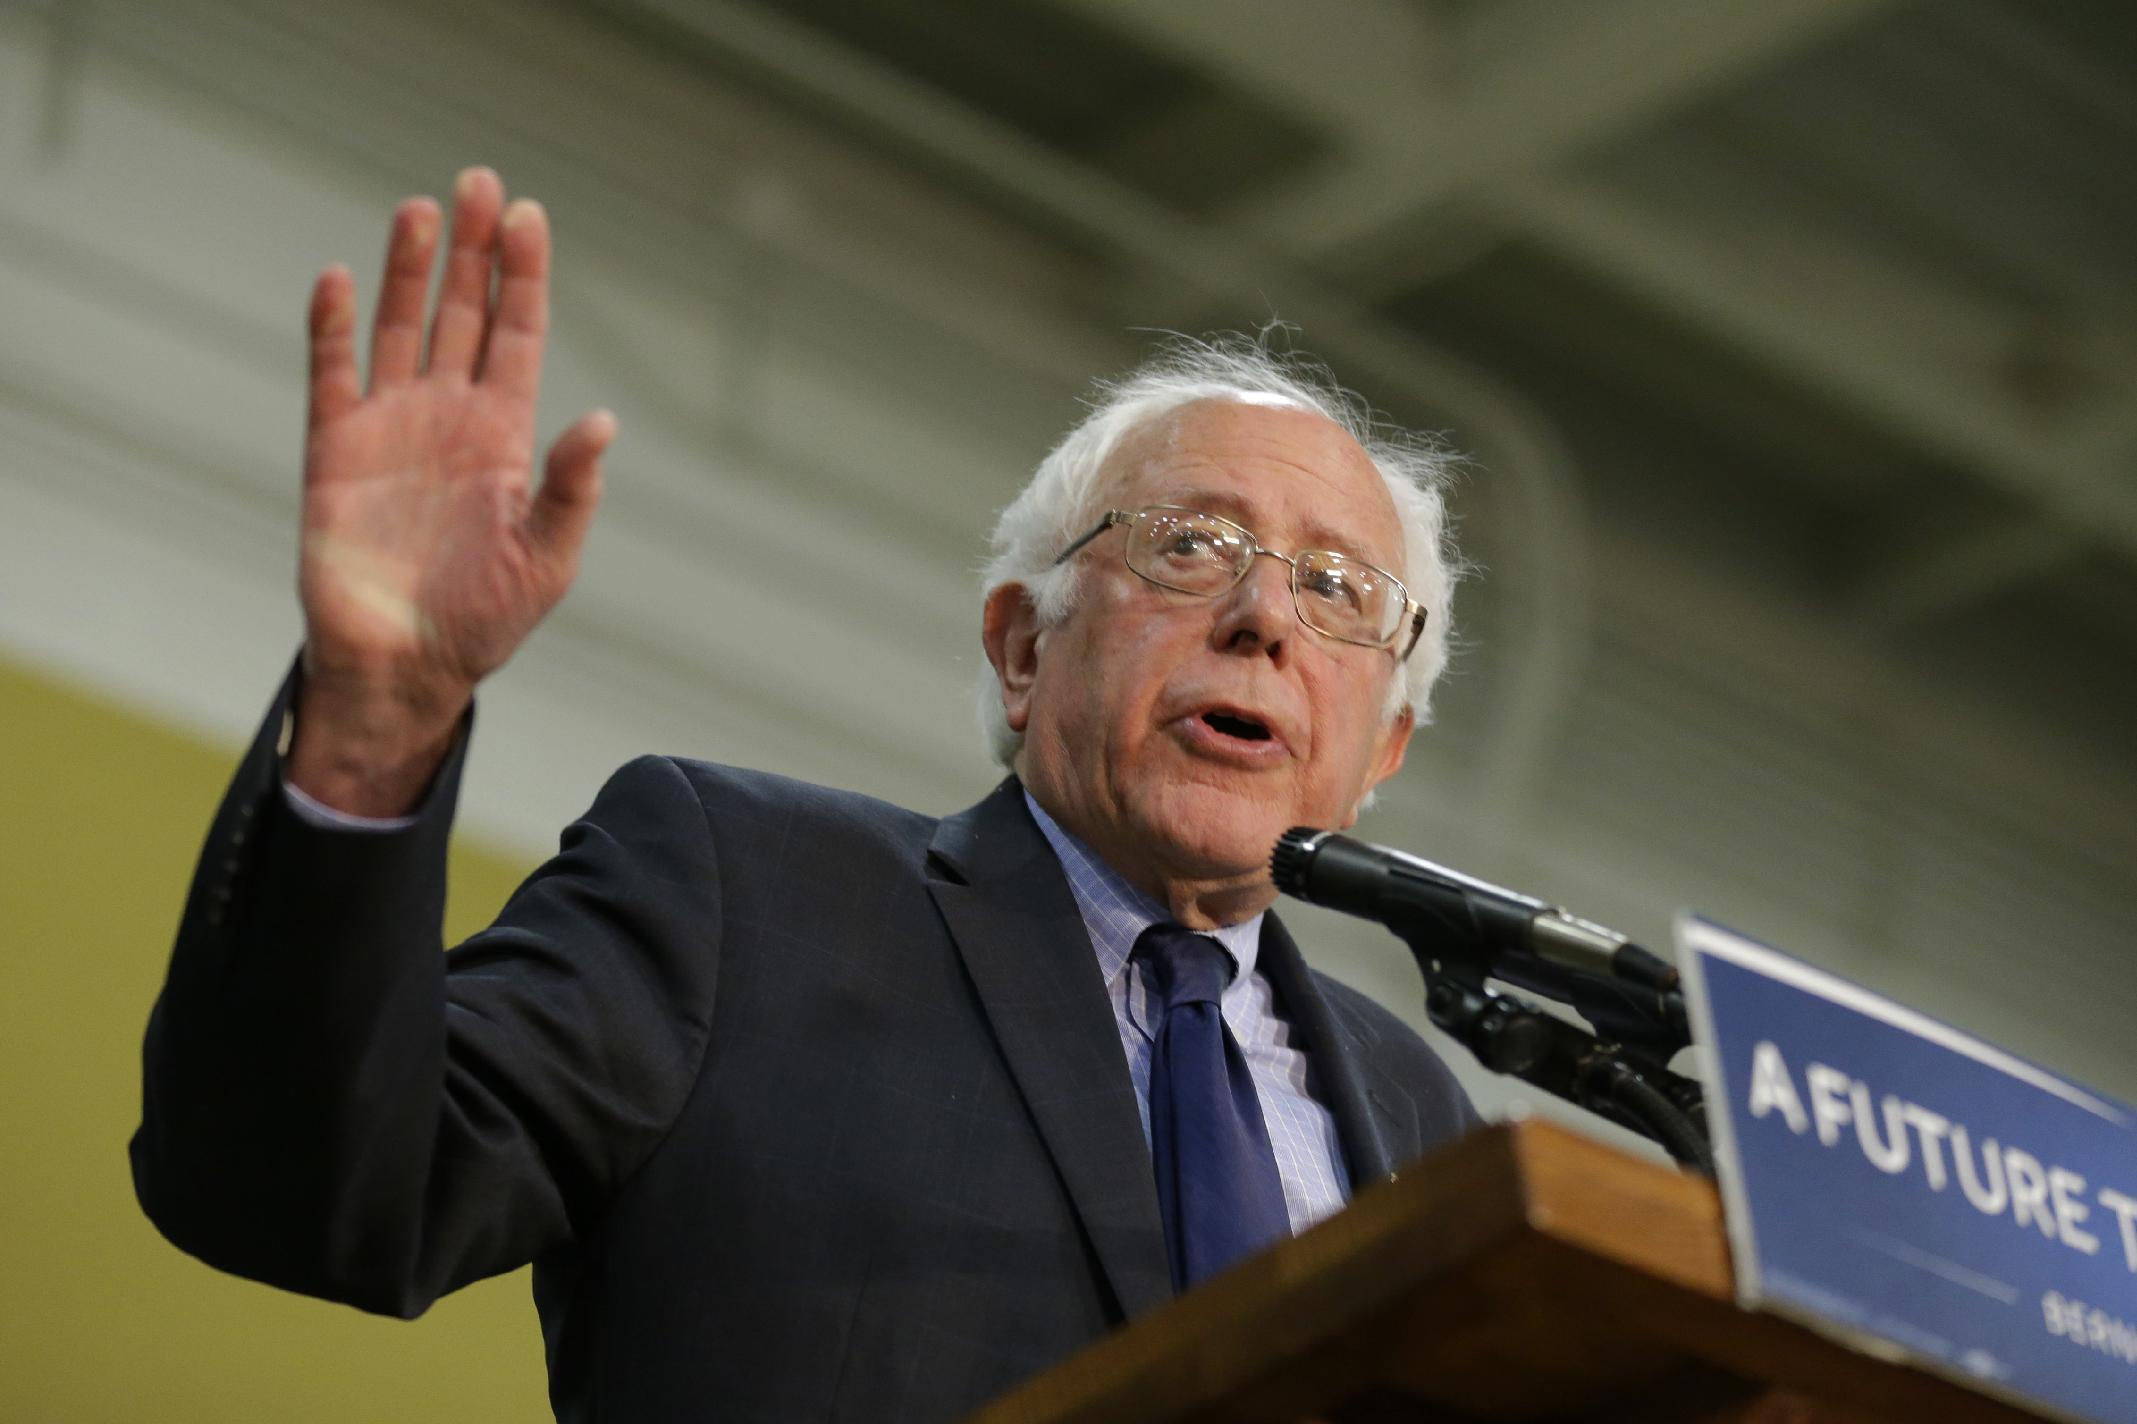 Clinton backers 'feel the Bern' of angry Sanders supporters